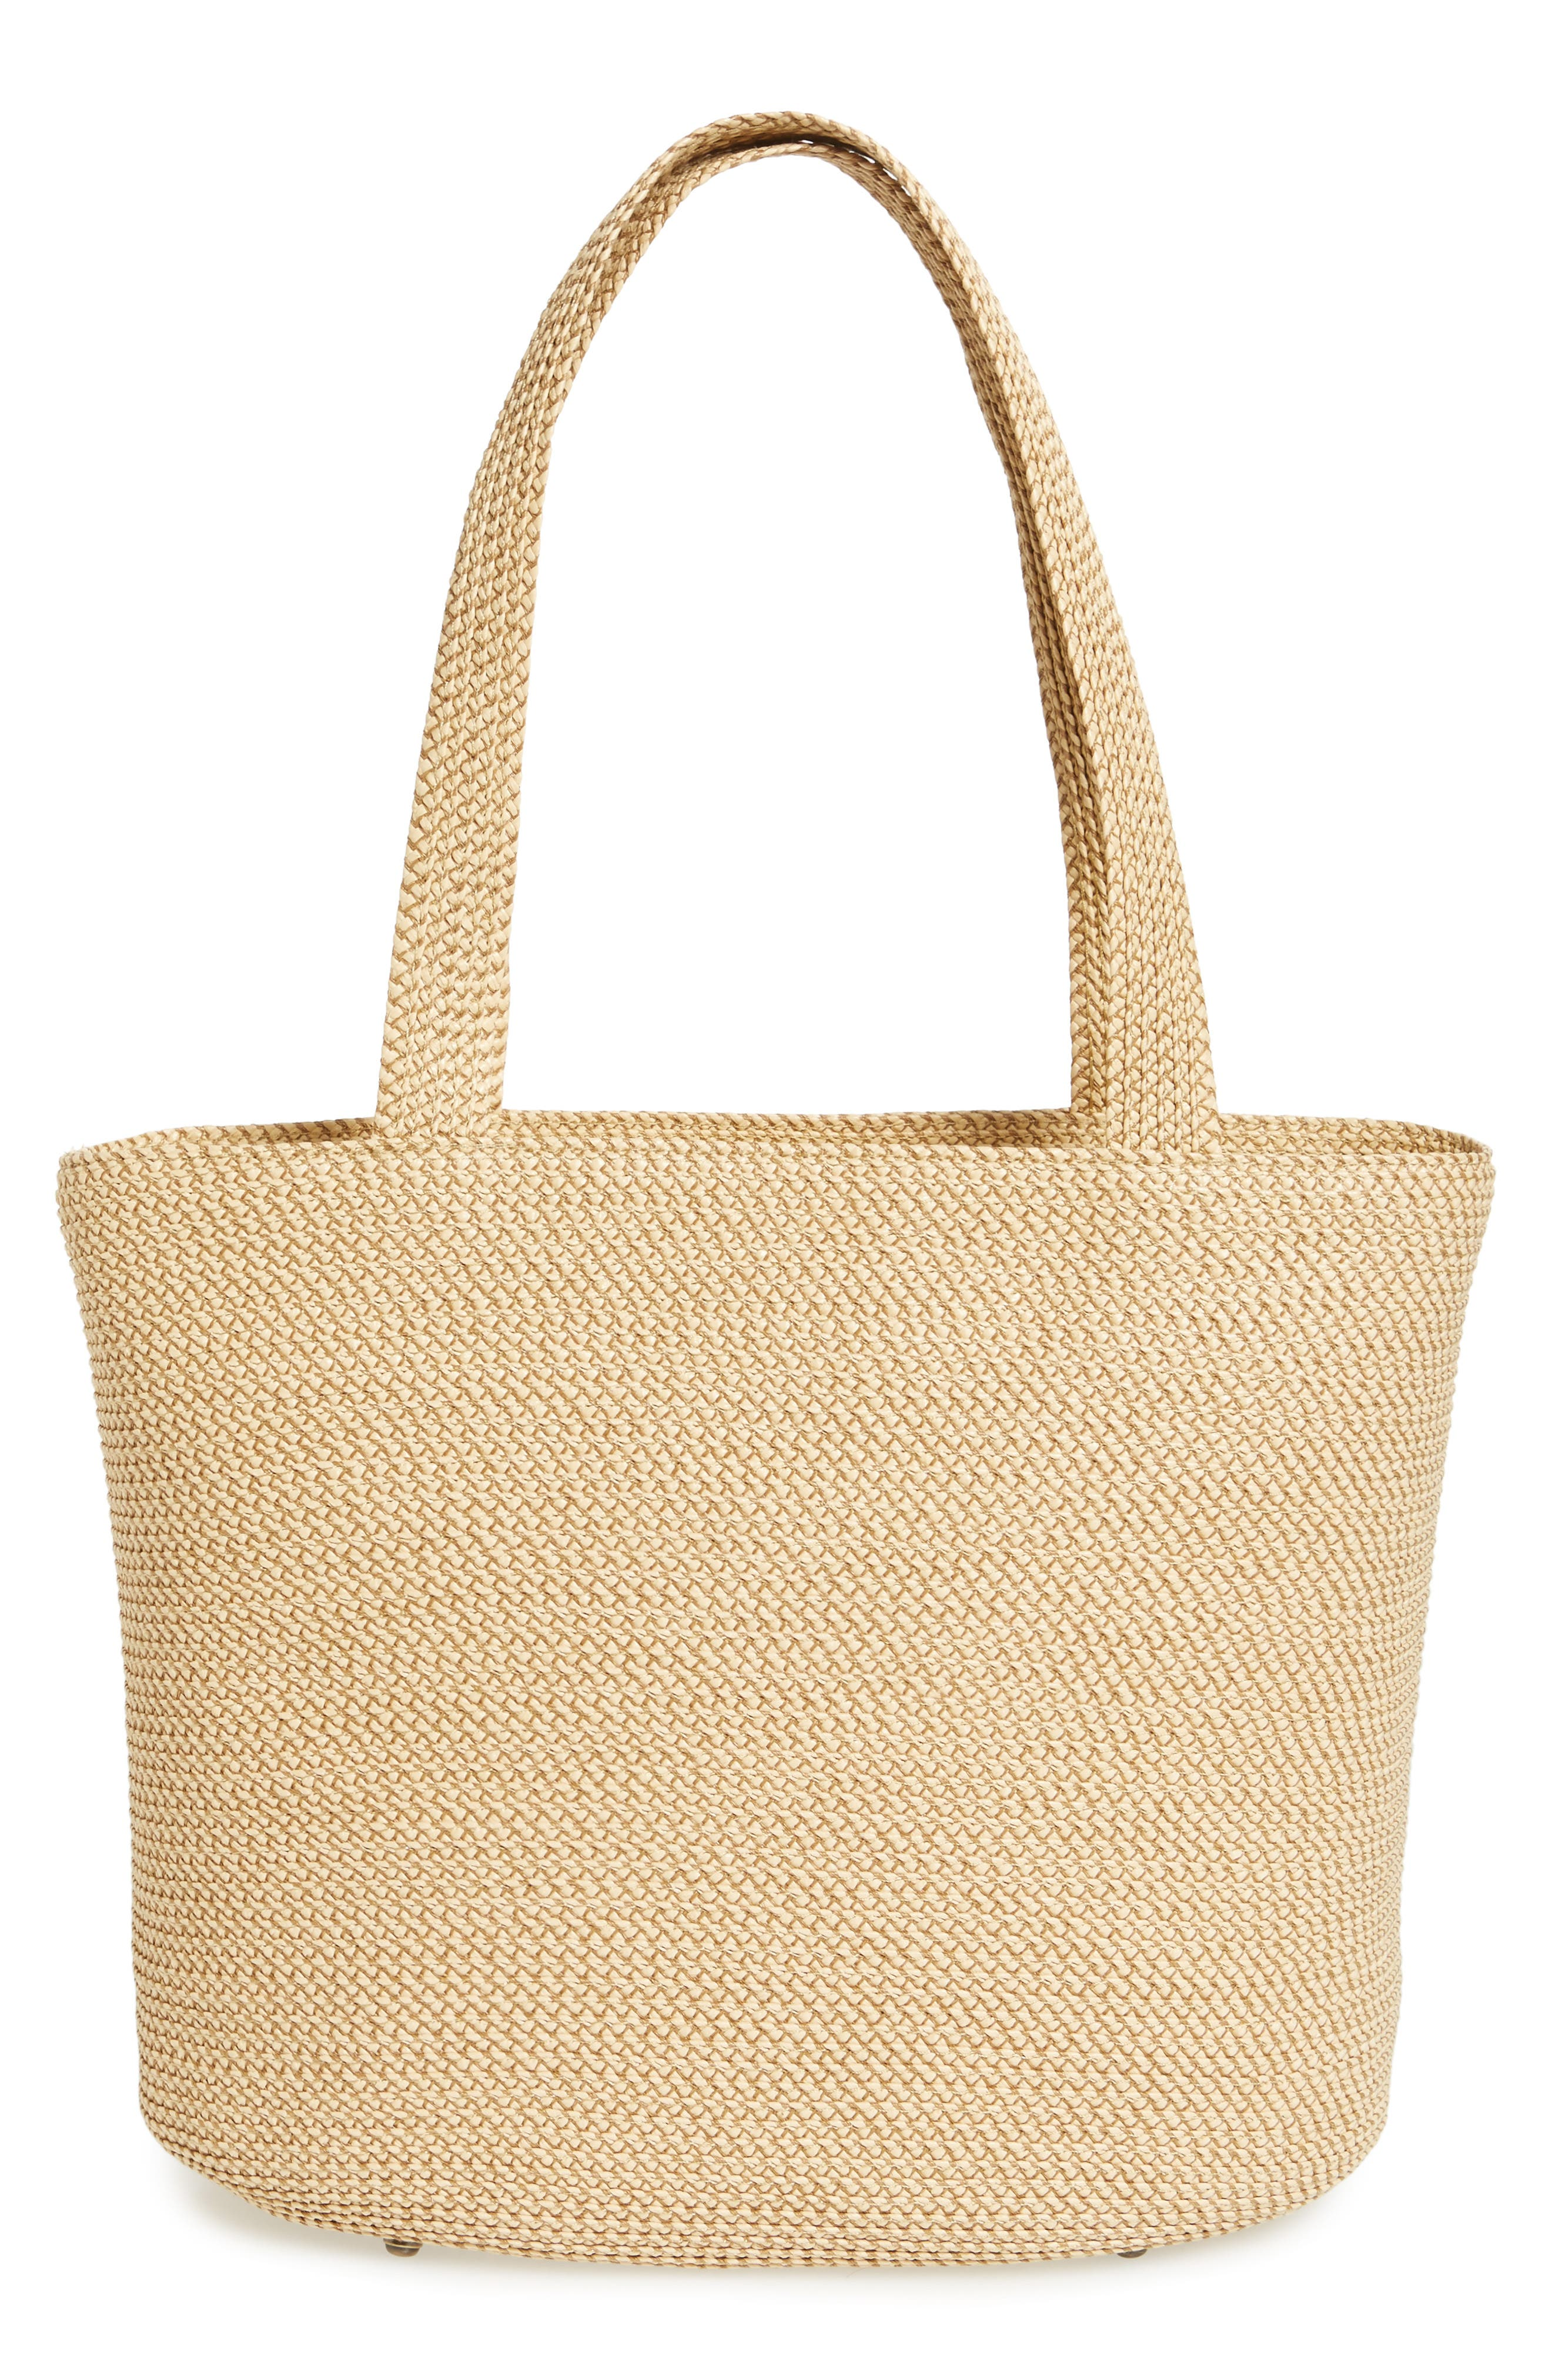 Squishee<sup>®</sup> Tote,                             Alternate thumbnail 3, color,                             PEANUT